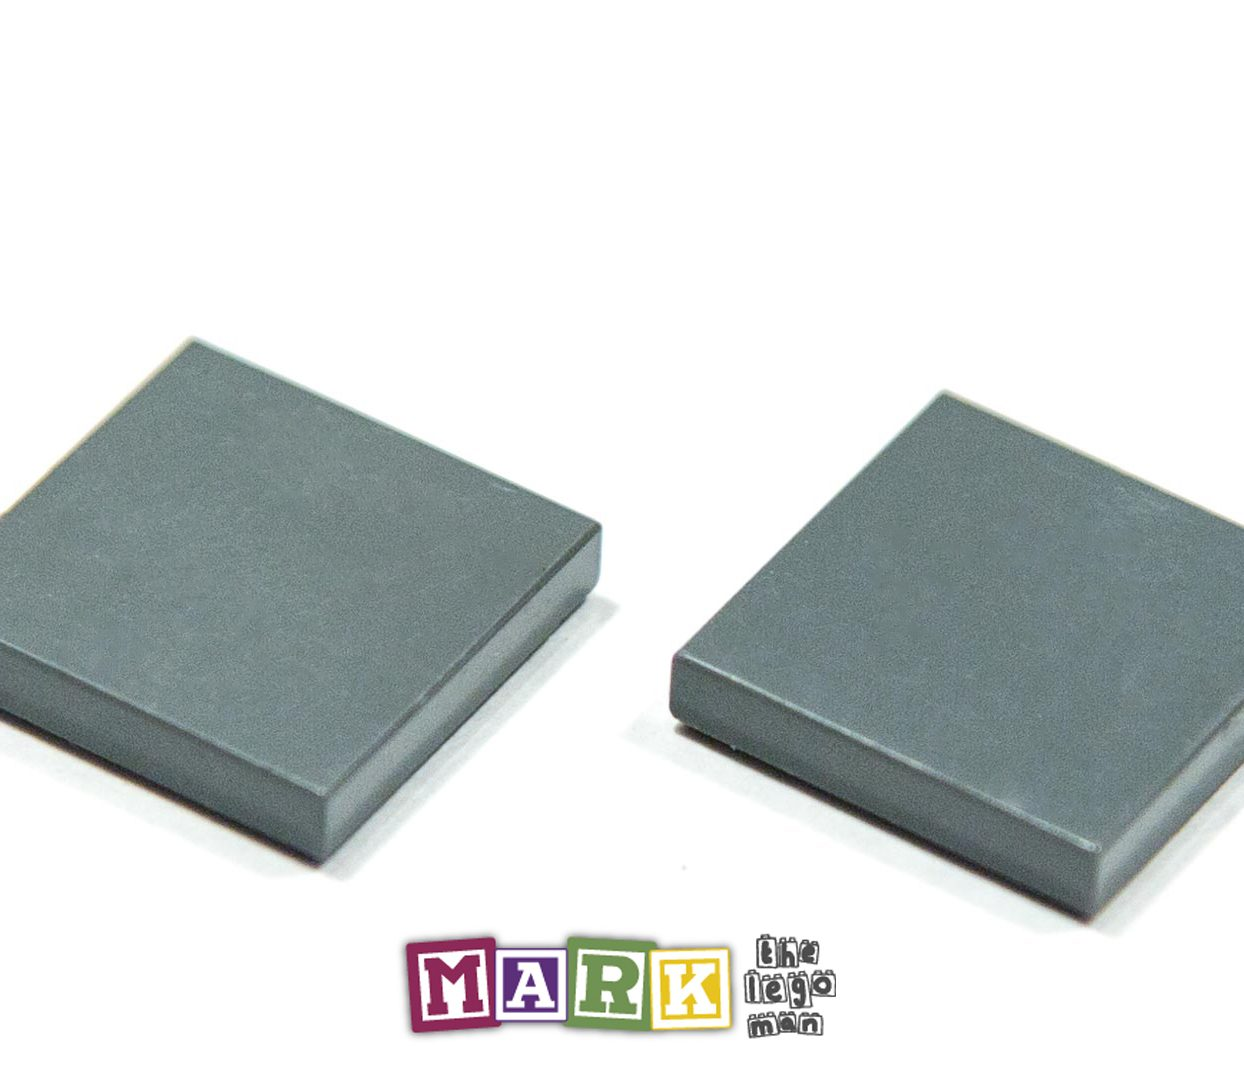 Pack of 2 Lego 3068 2x2 Flat Tile 4211055